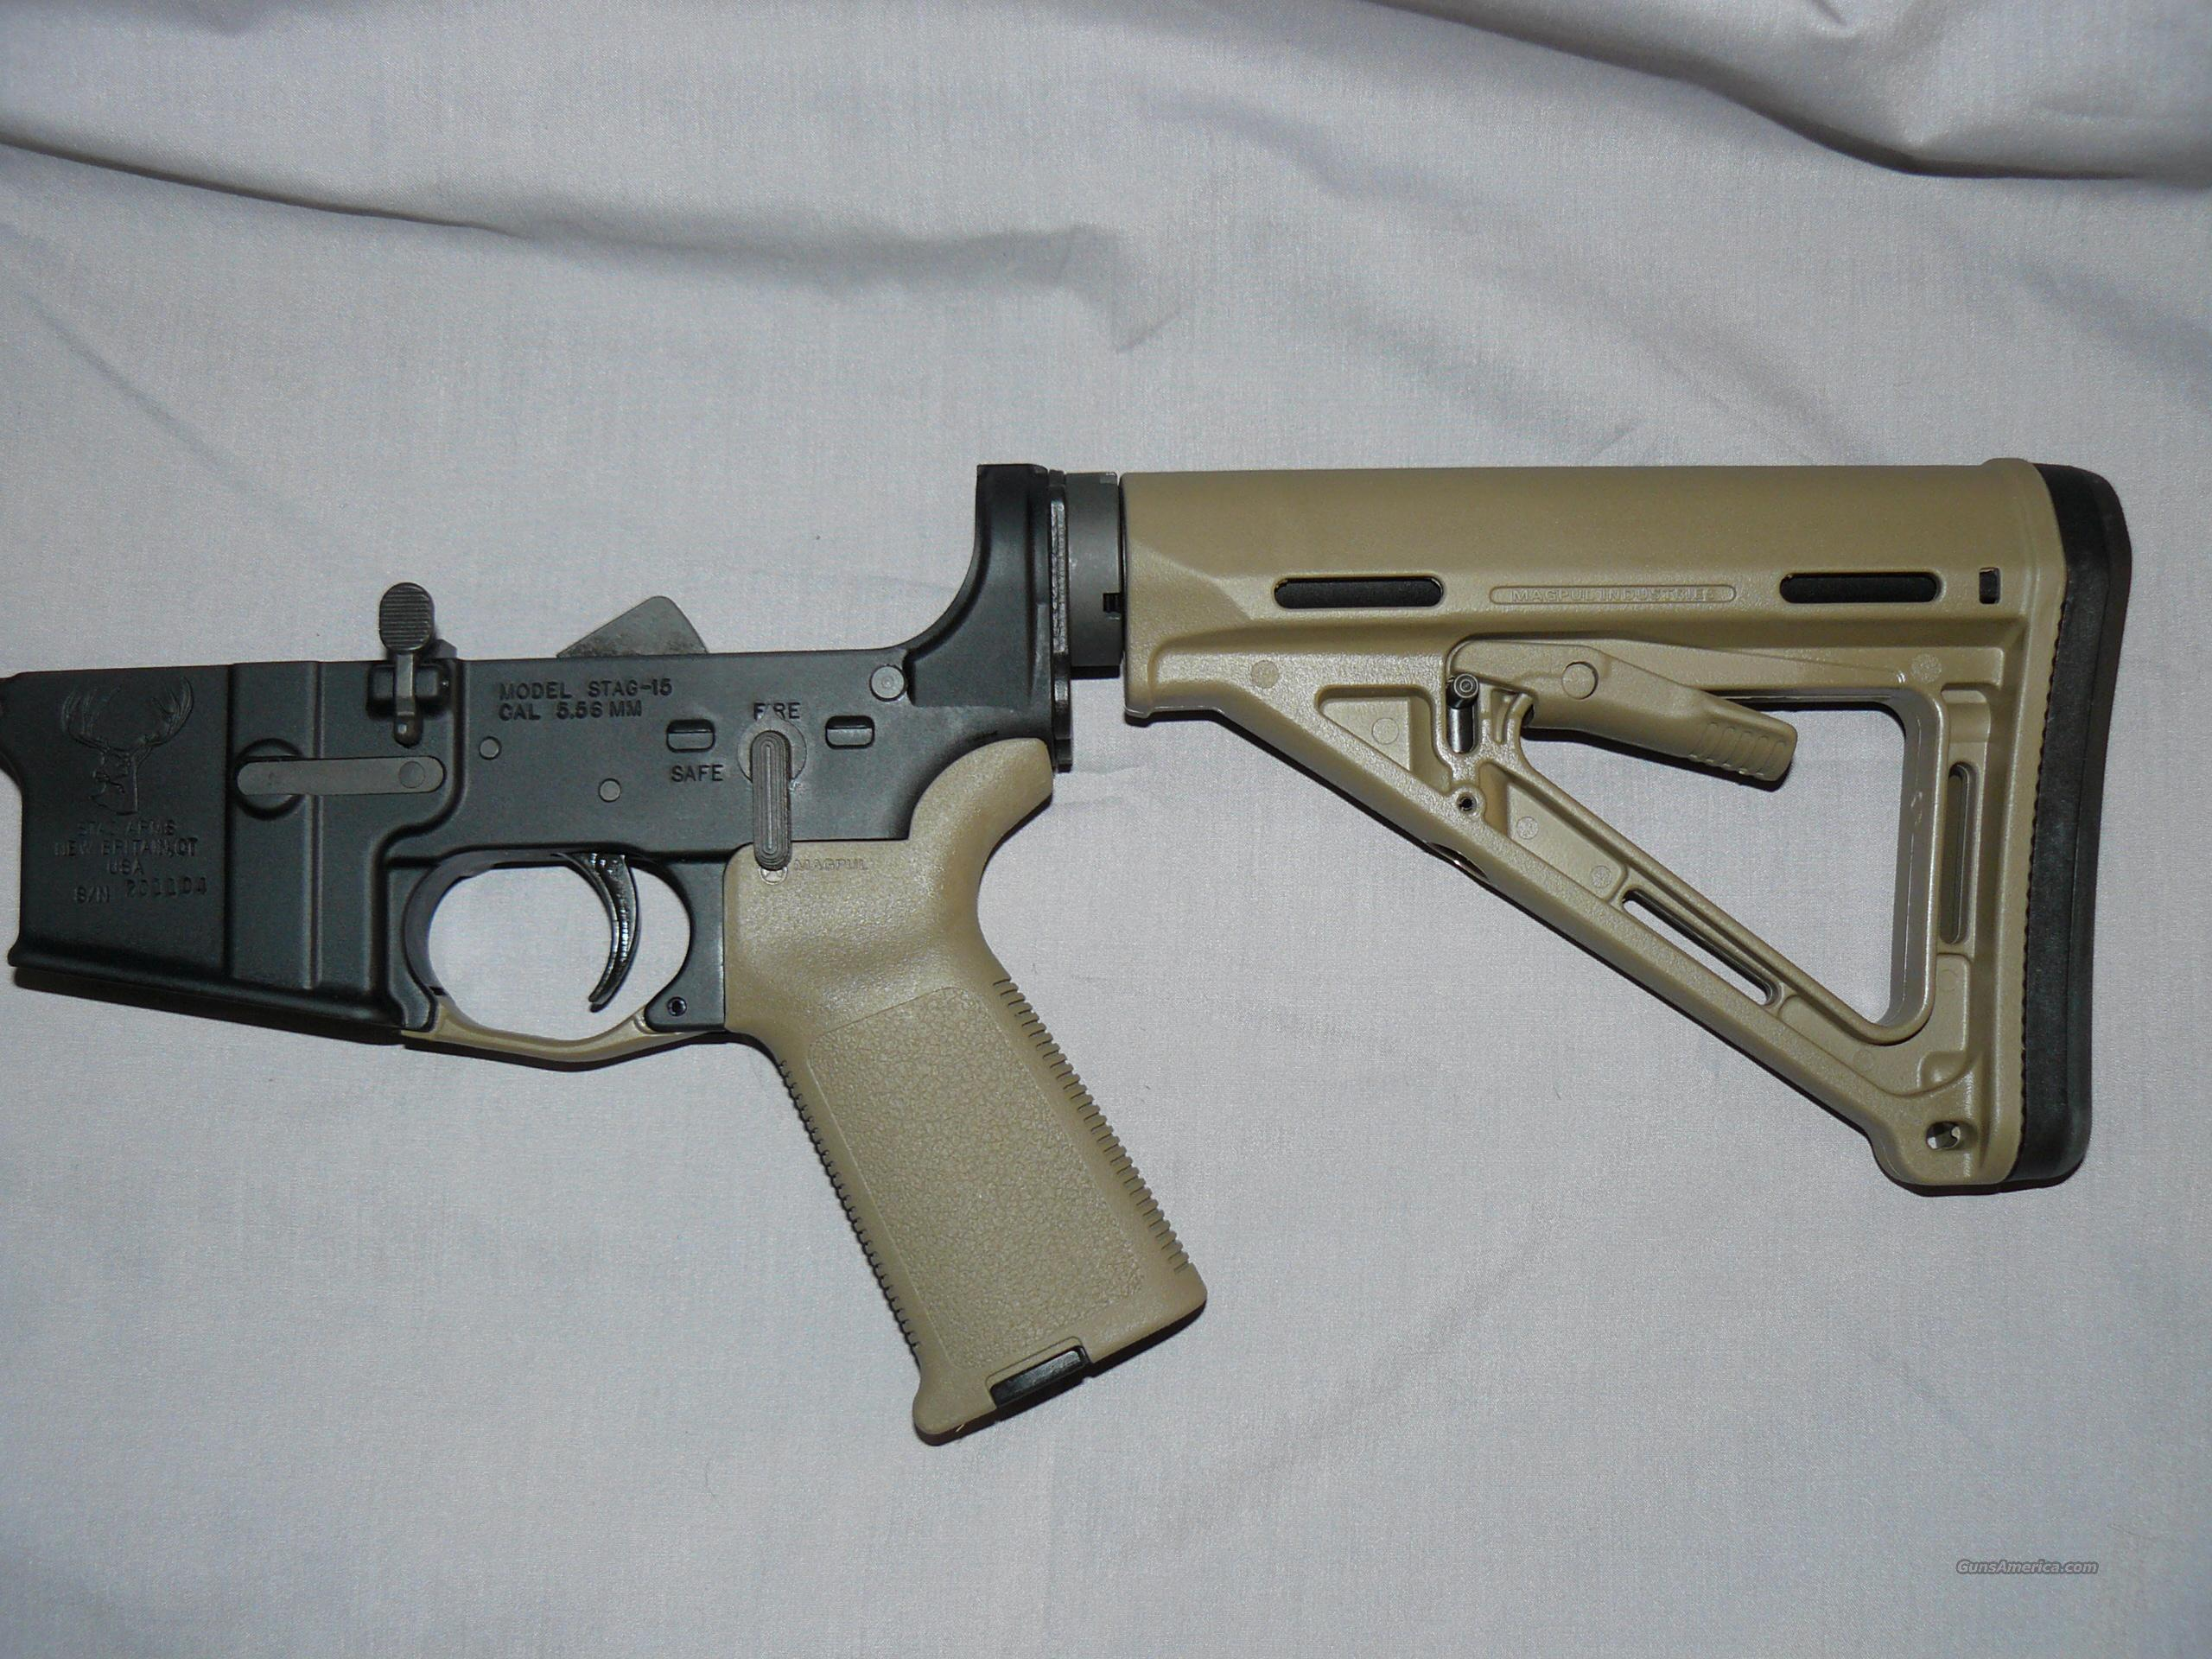 MAGPUL MOE FDE COMPLETE STAG AR15 LOWER  Guns > Rifles > AR-15 Rifles - Small Manufacturers > Lower Only